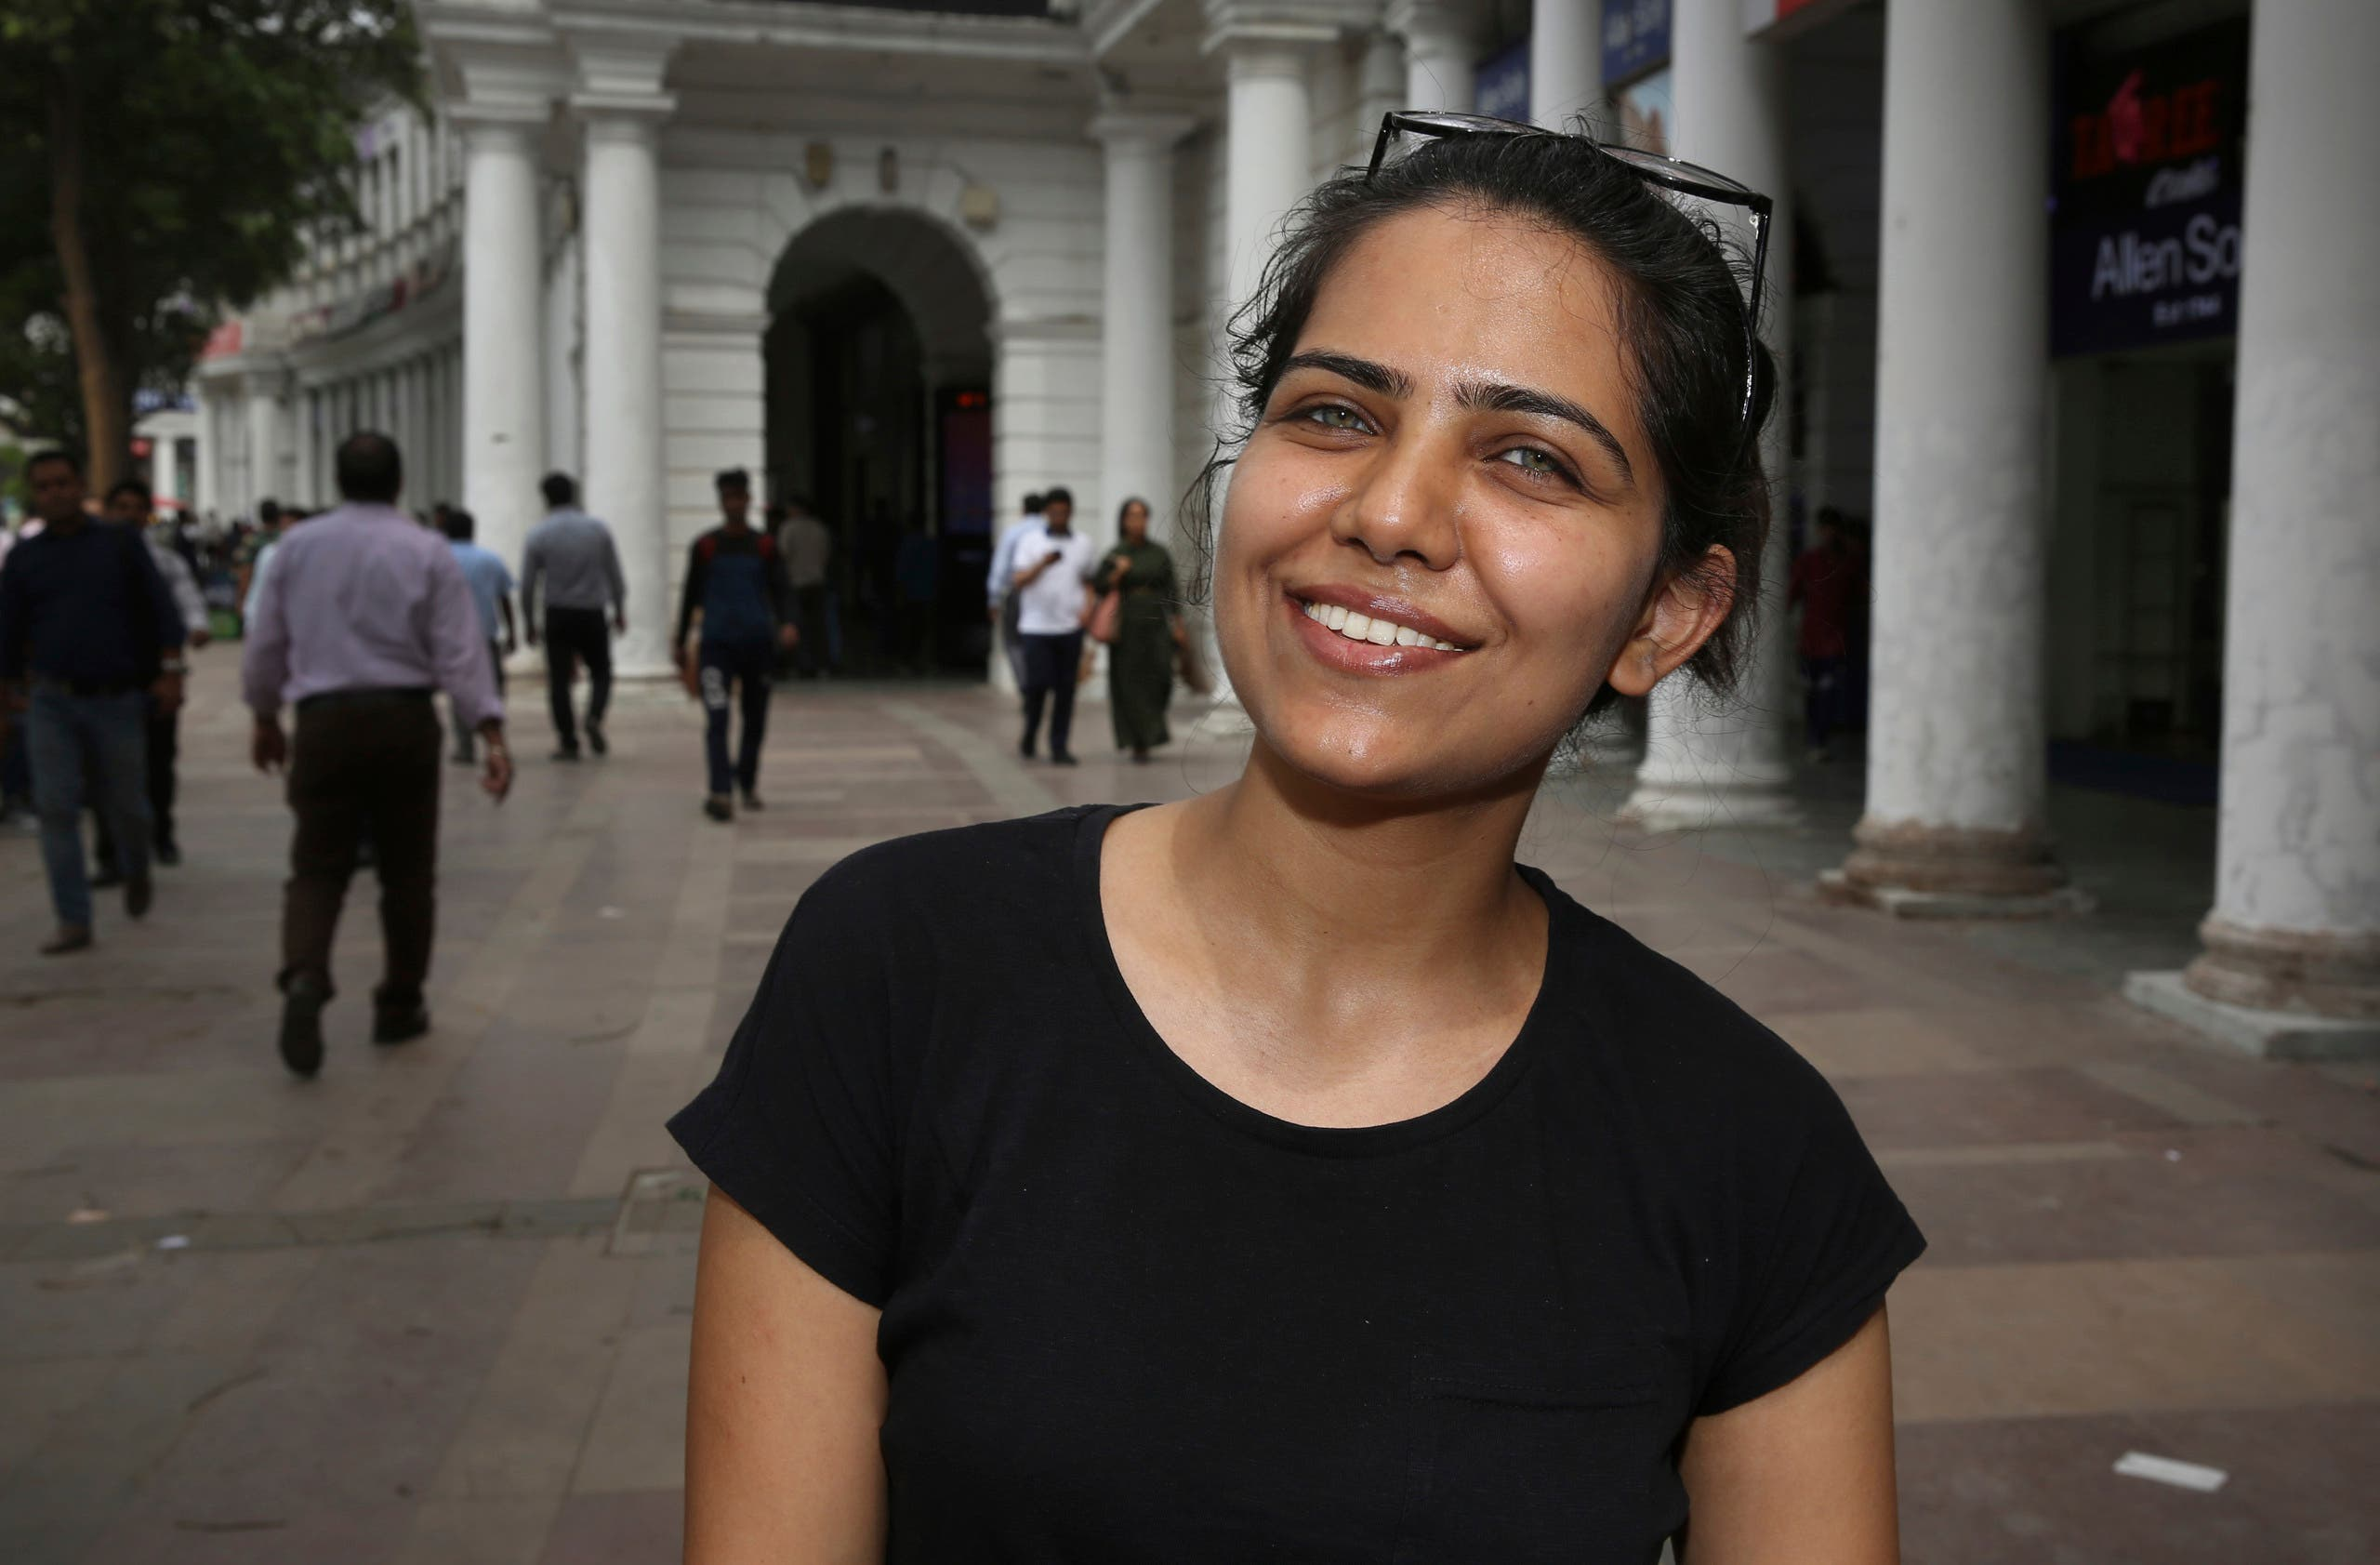 Monika Dalal, 20, a psychology student talks to associated Press in New Delhi, India. (AP)